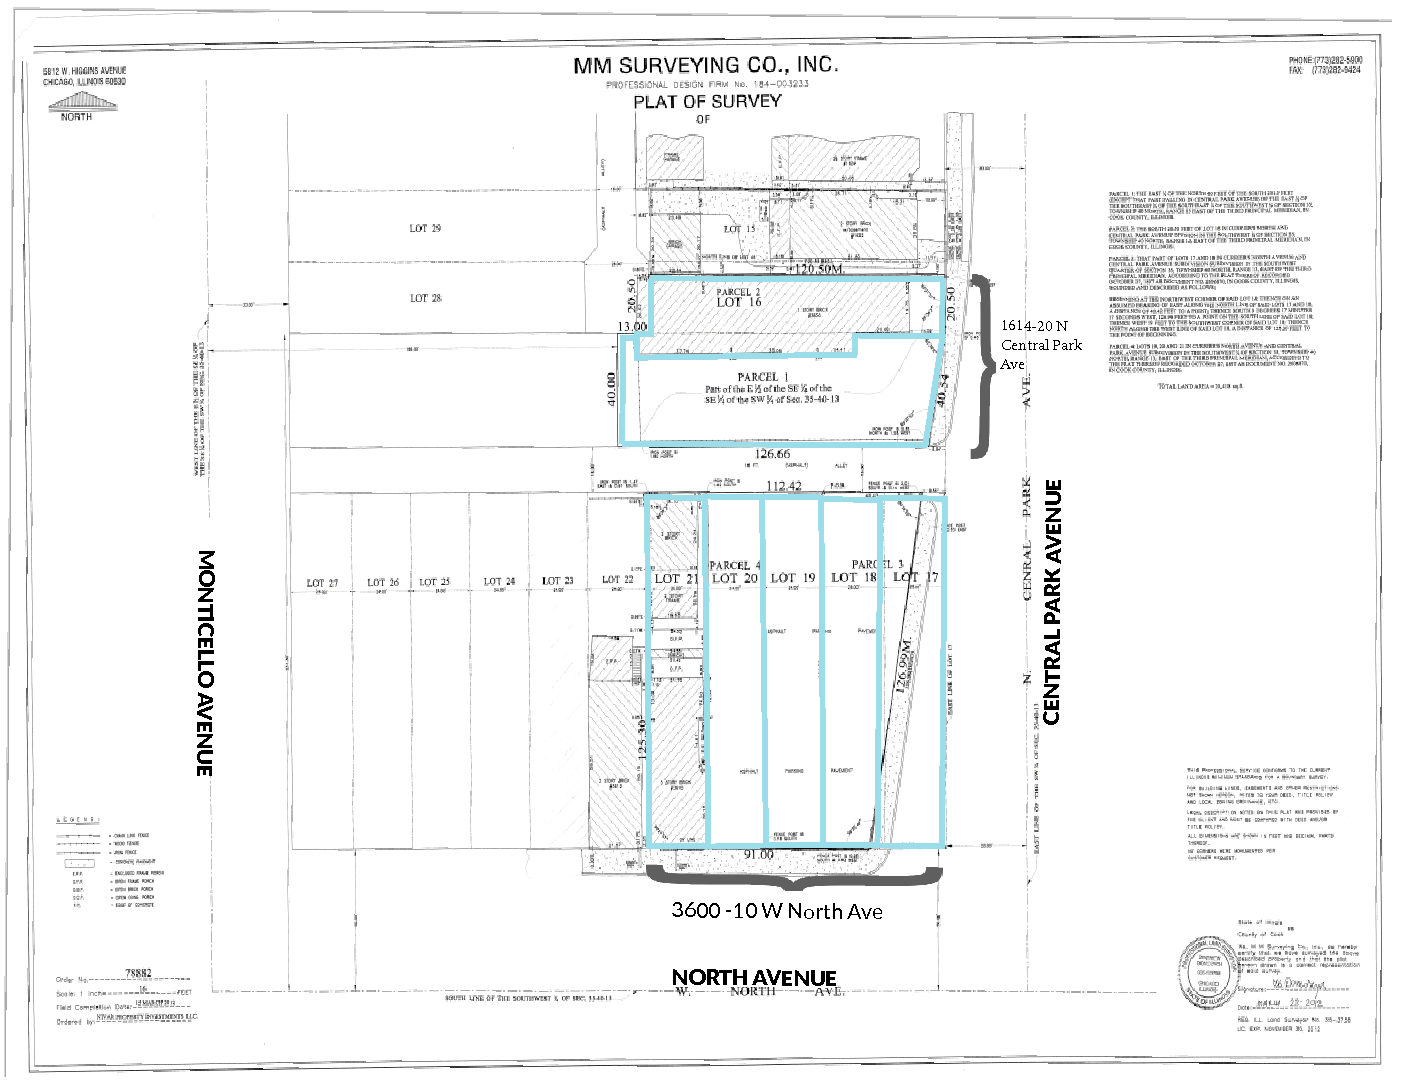 Humboldt Park Corner Commercial Land Development Opportunity on North & Central Park Aveunes